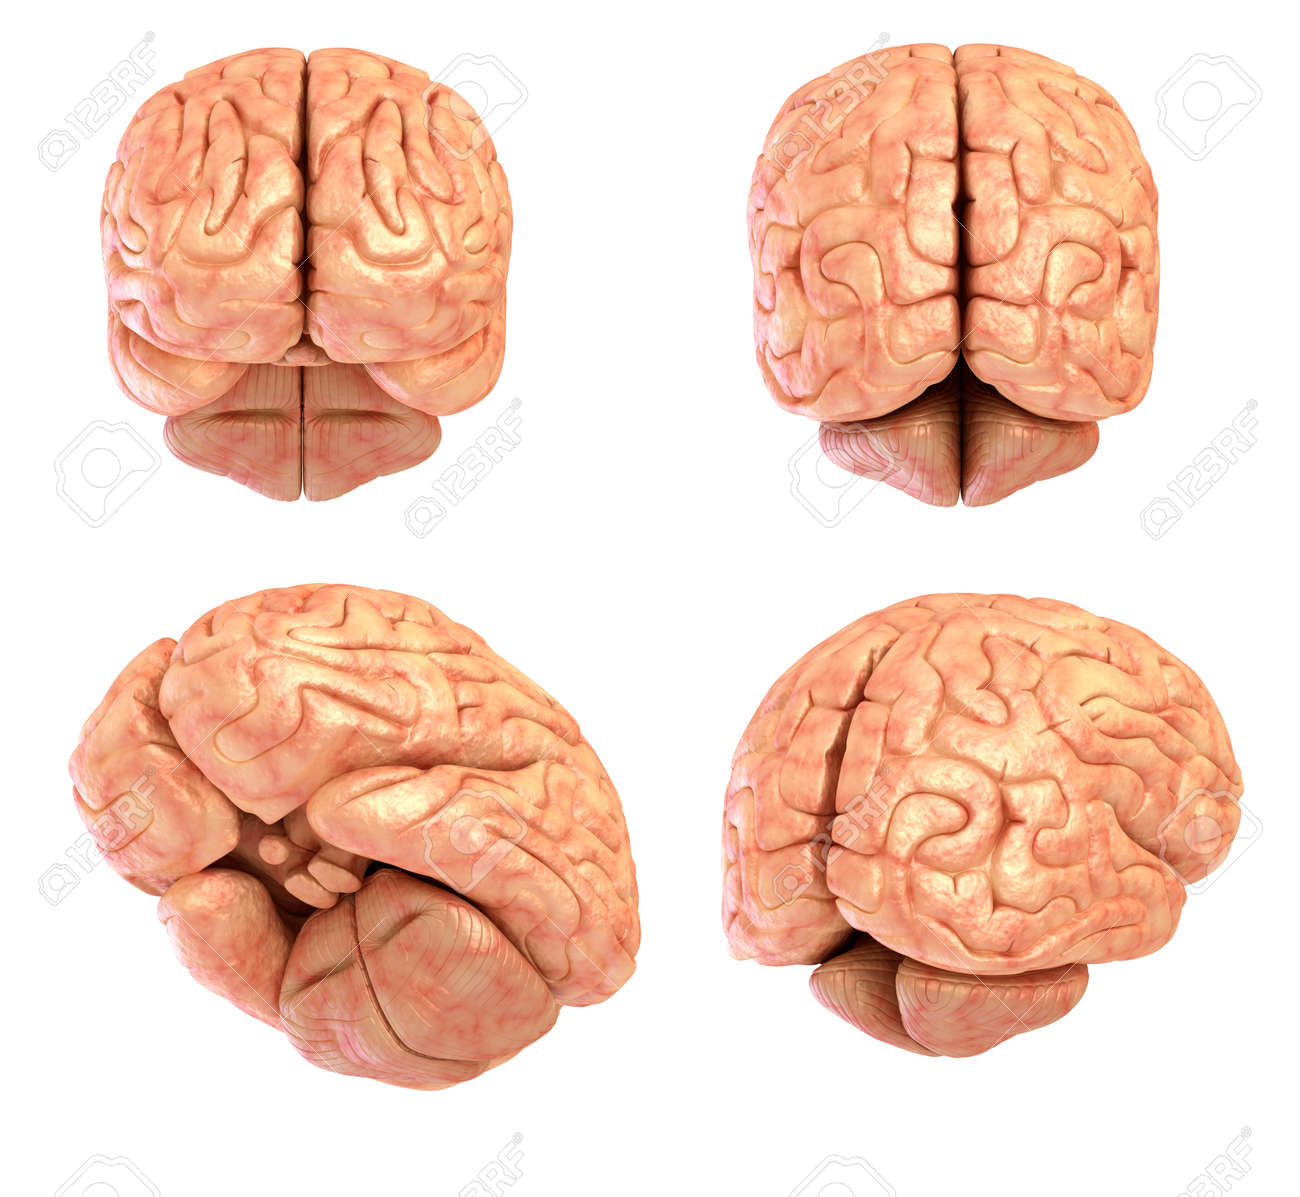 Human Brain Model Isolated Stock Photo, Picture And Royalty Free ...